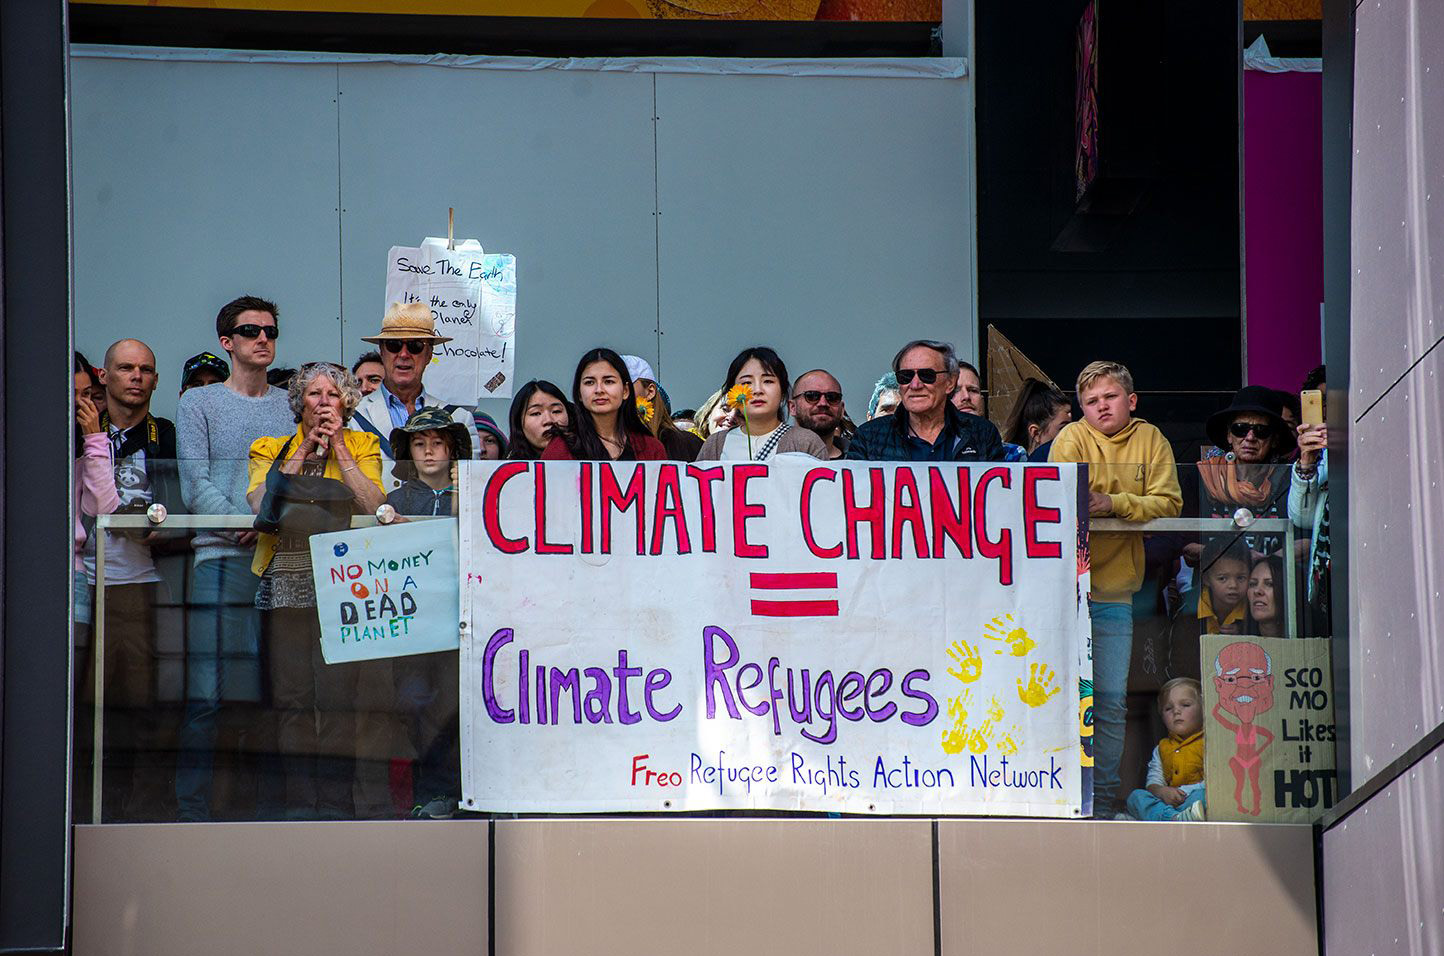 A crowd gathers and looks over a balustrade. A large banner is hung over the balustrade which reads 'Climate Change=Climate Refugees. Freo Refugee Rights Action Network'. Other placards are also held around it, including one that reads 'No money on a dead planet' and 'Sco Mo likes it hot' with a caricature of the Prime Minister in a bikini.